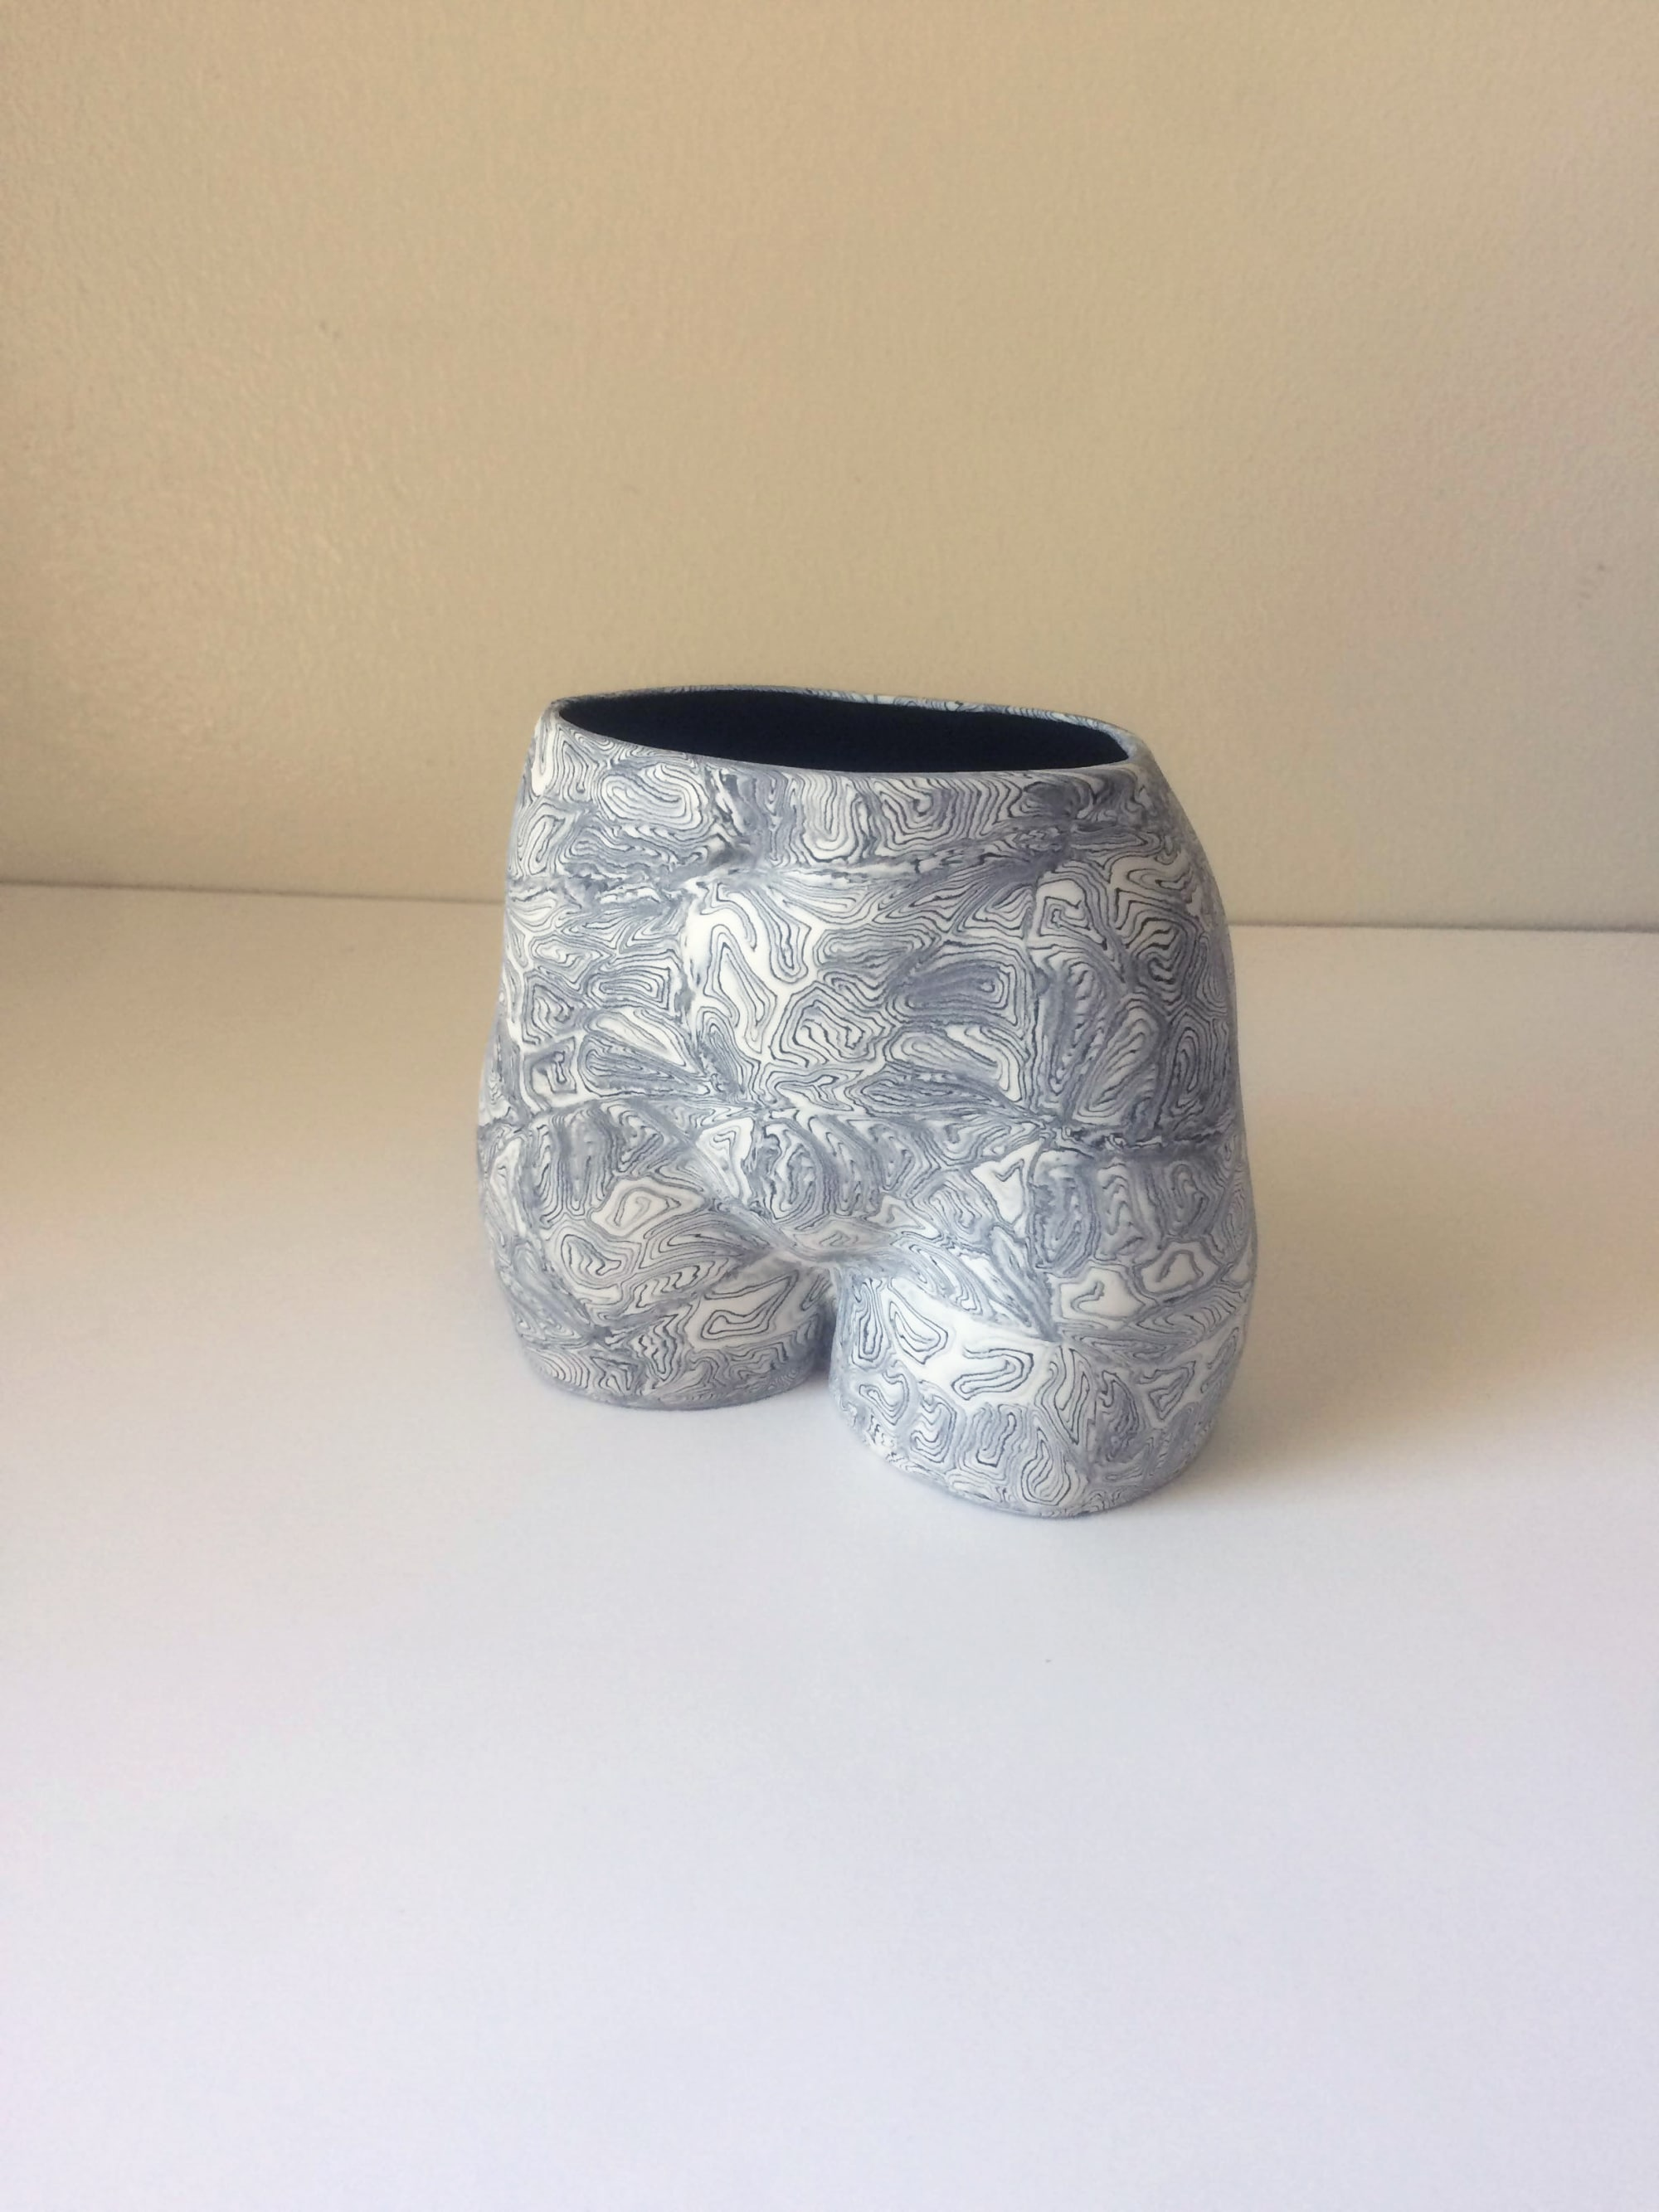 Vases & Vessels by Alice Lang seen at Private Residence, Los Angeles - Boob and Butt Mugs